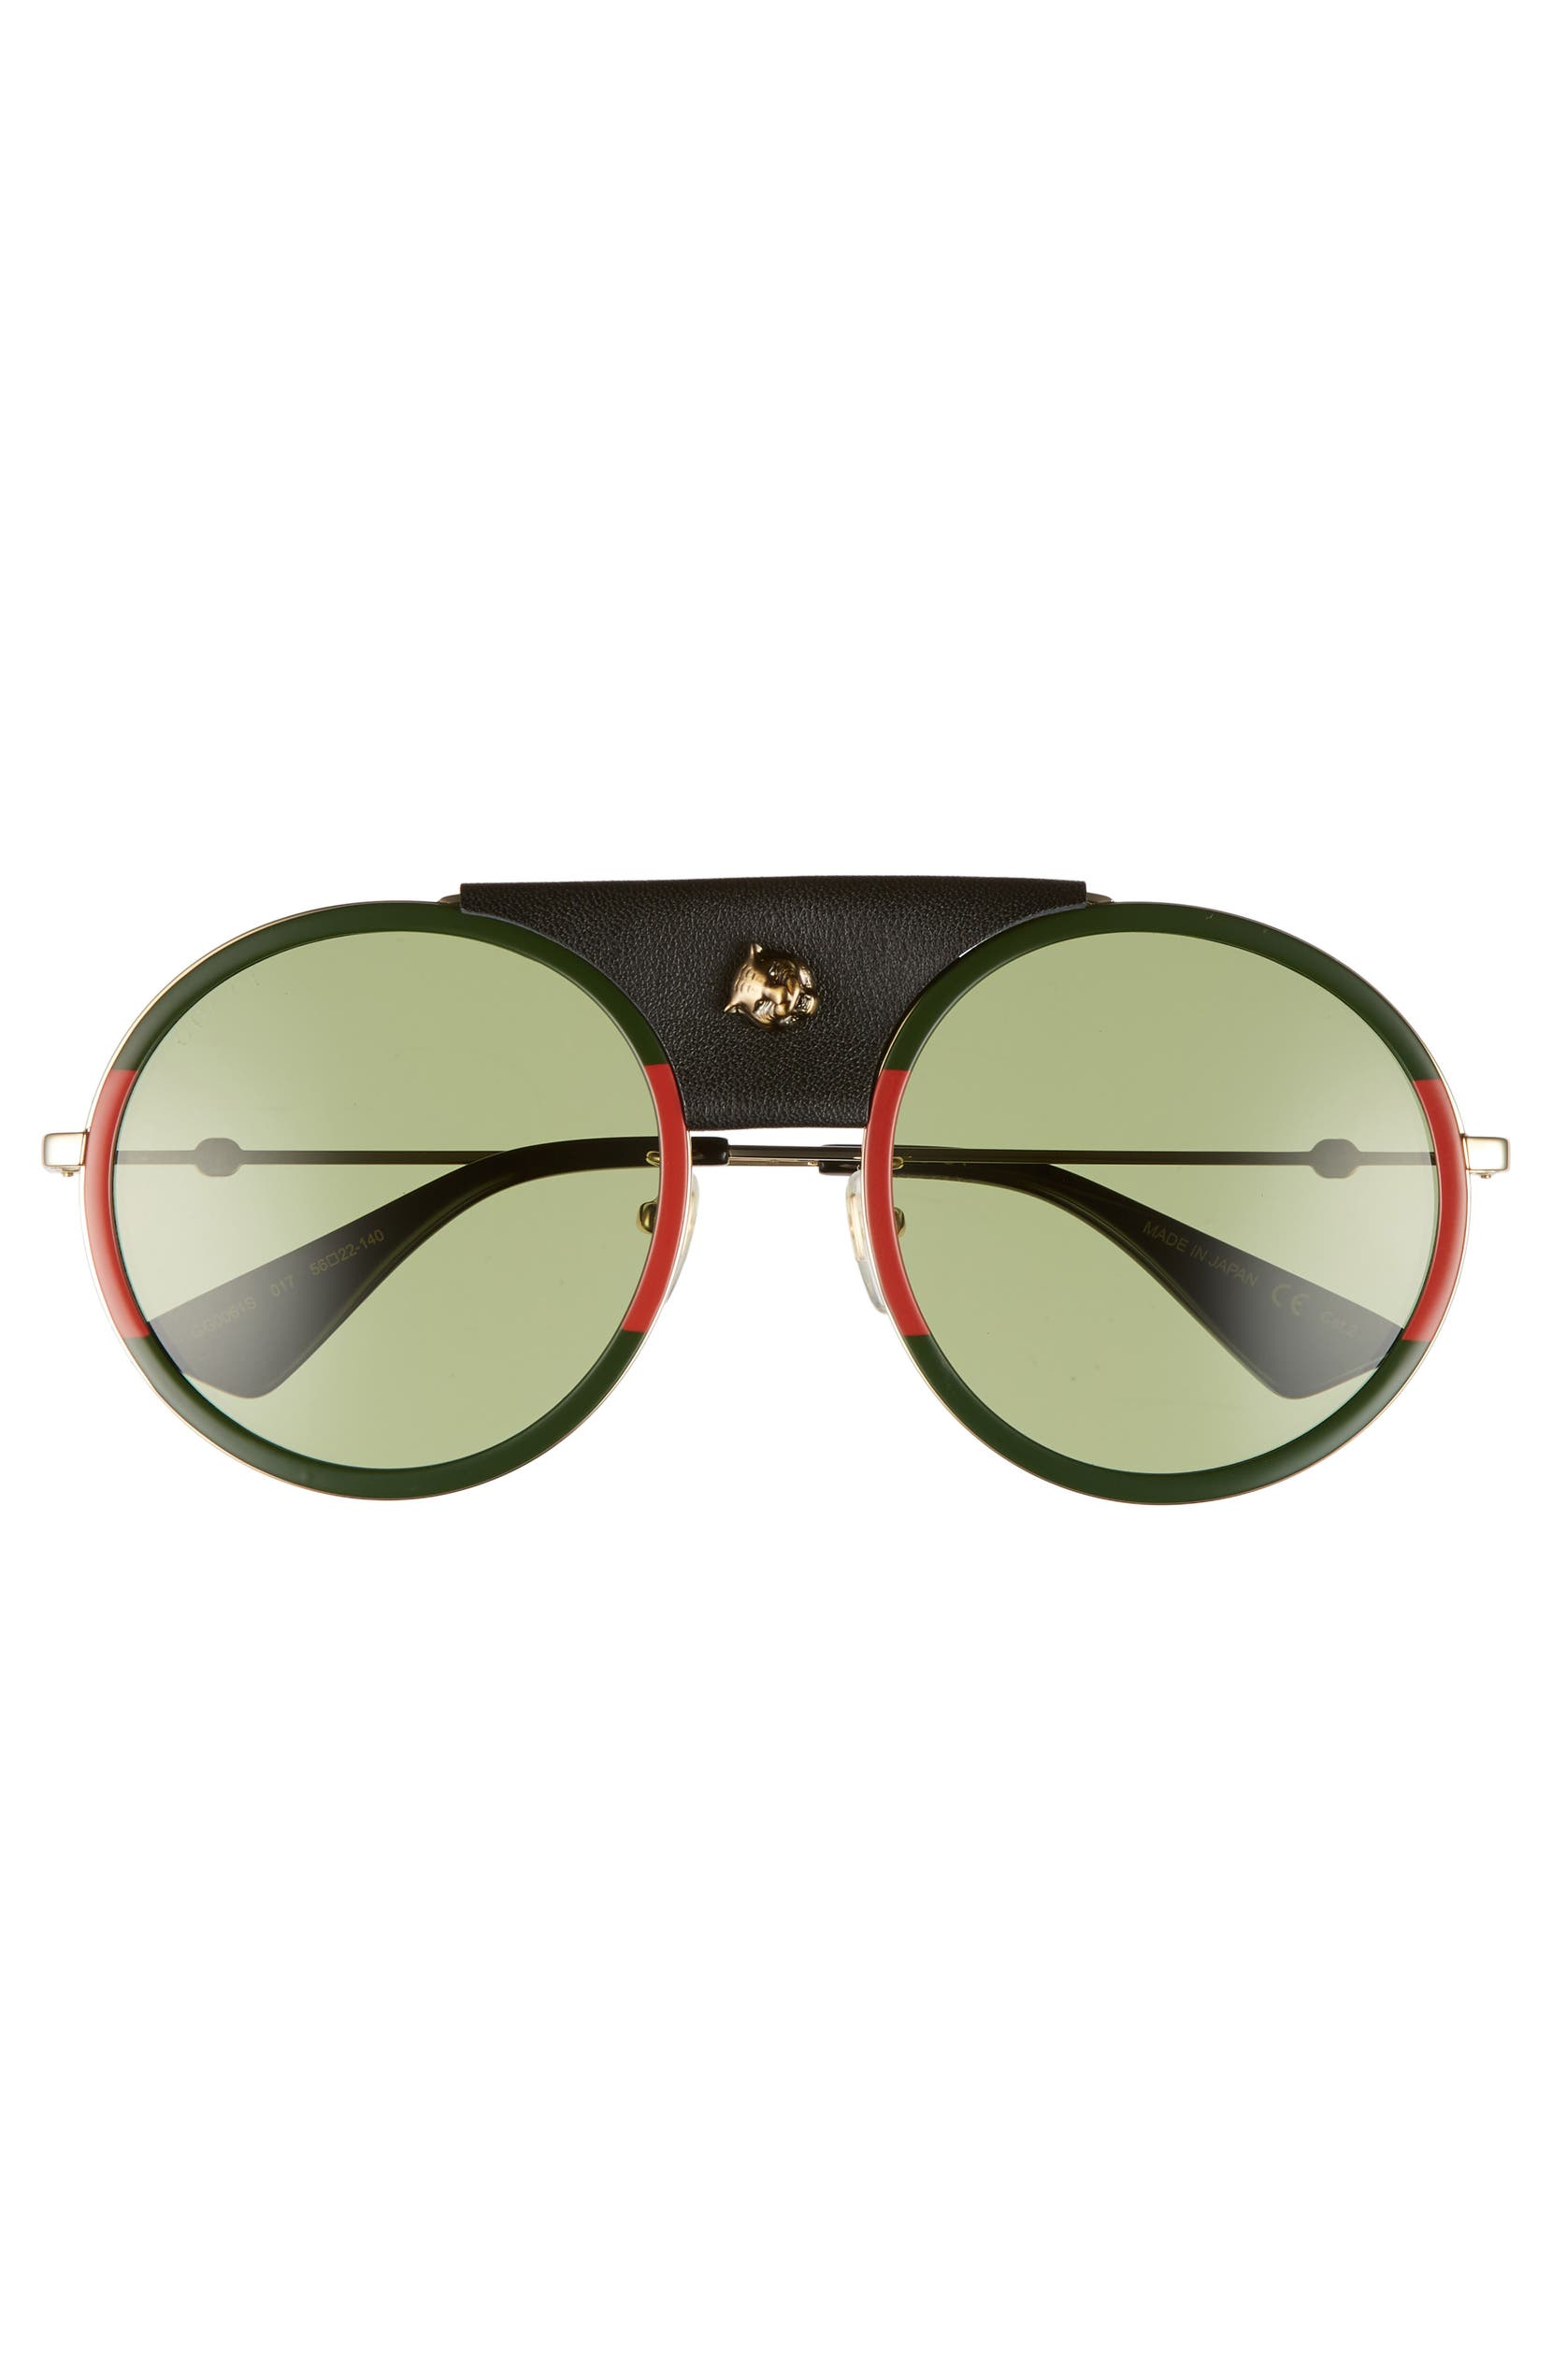 f697aef7b2 Gucci Web Block 56mm Round Sunglasses with Leather Wrap